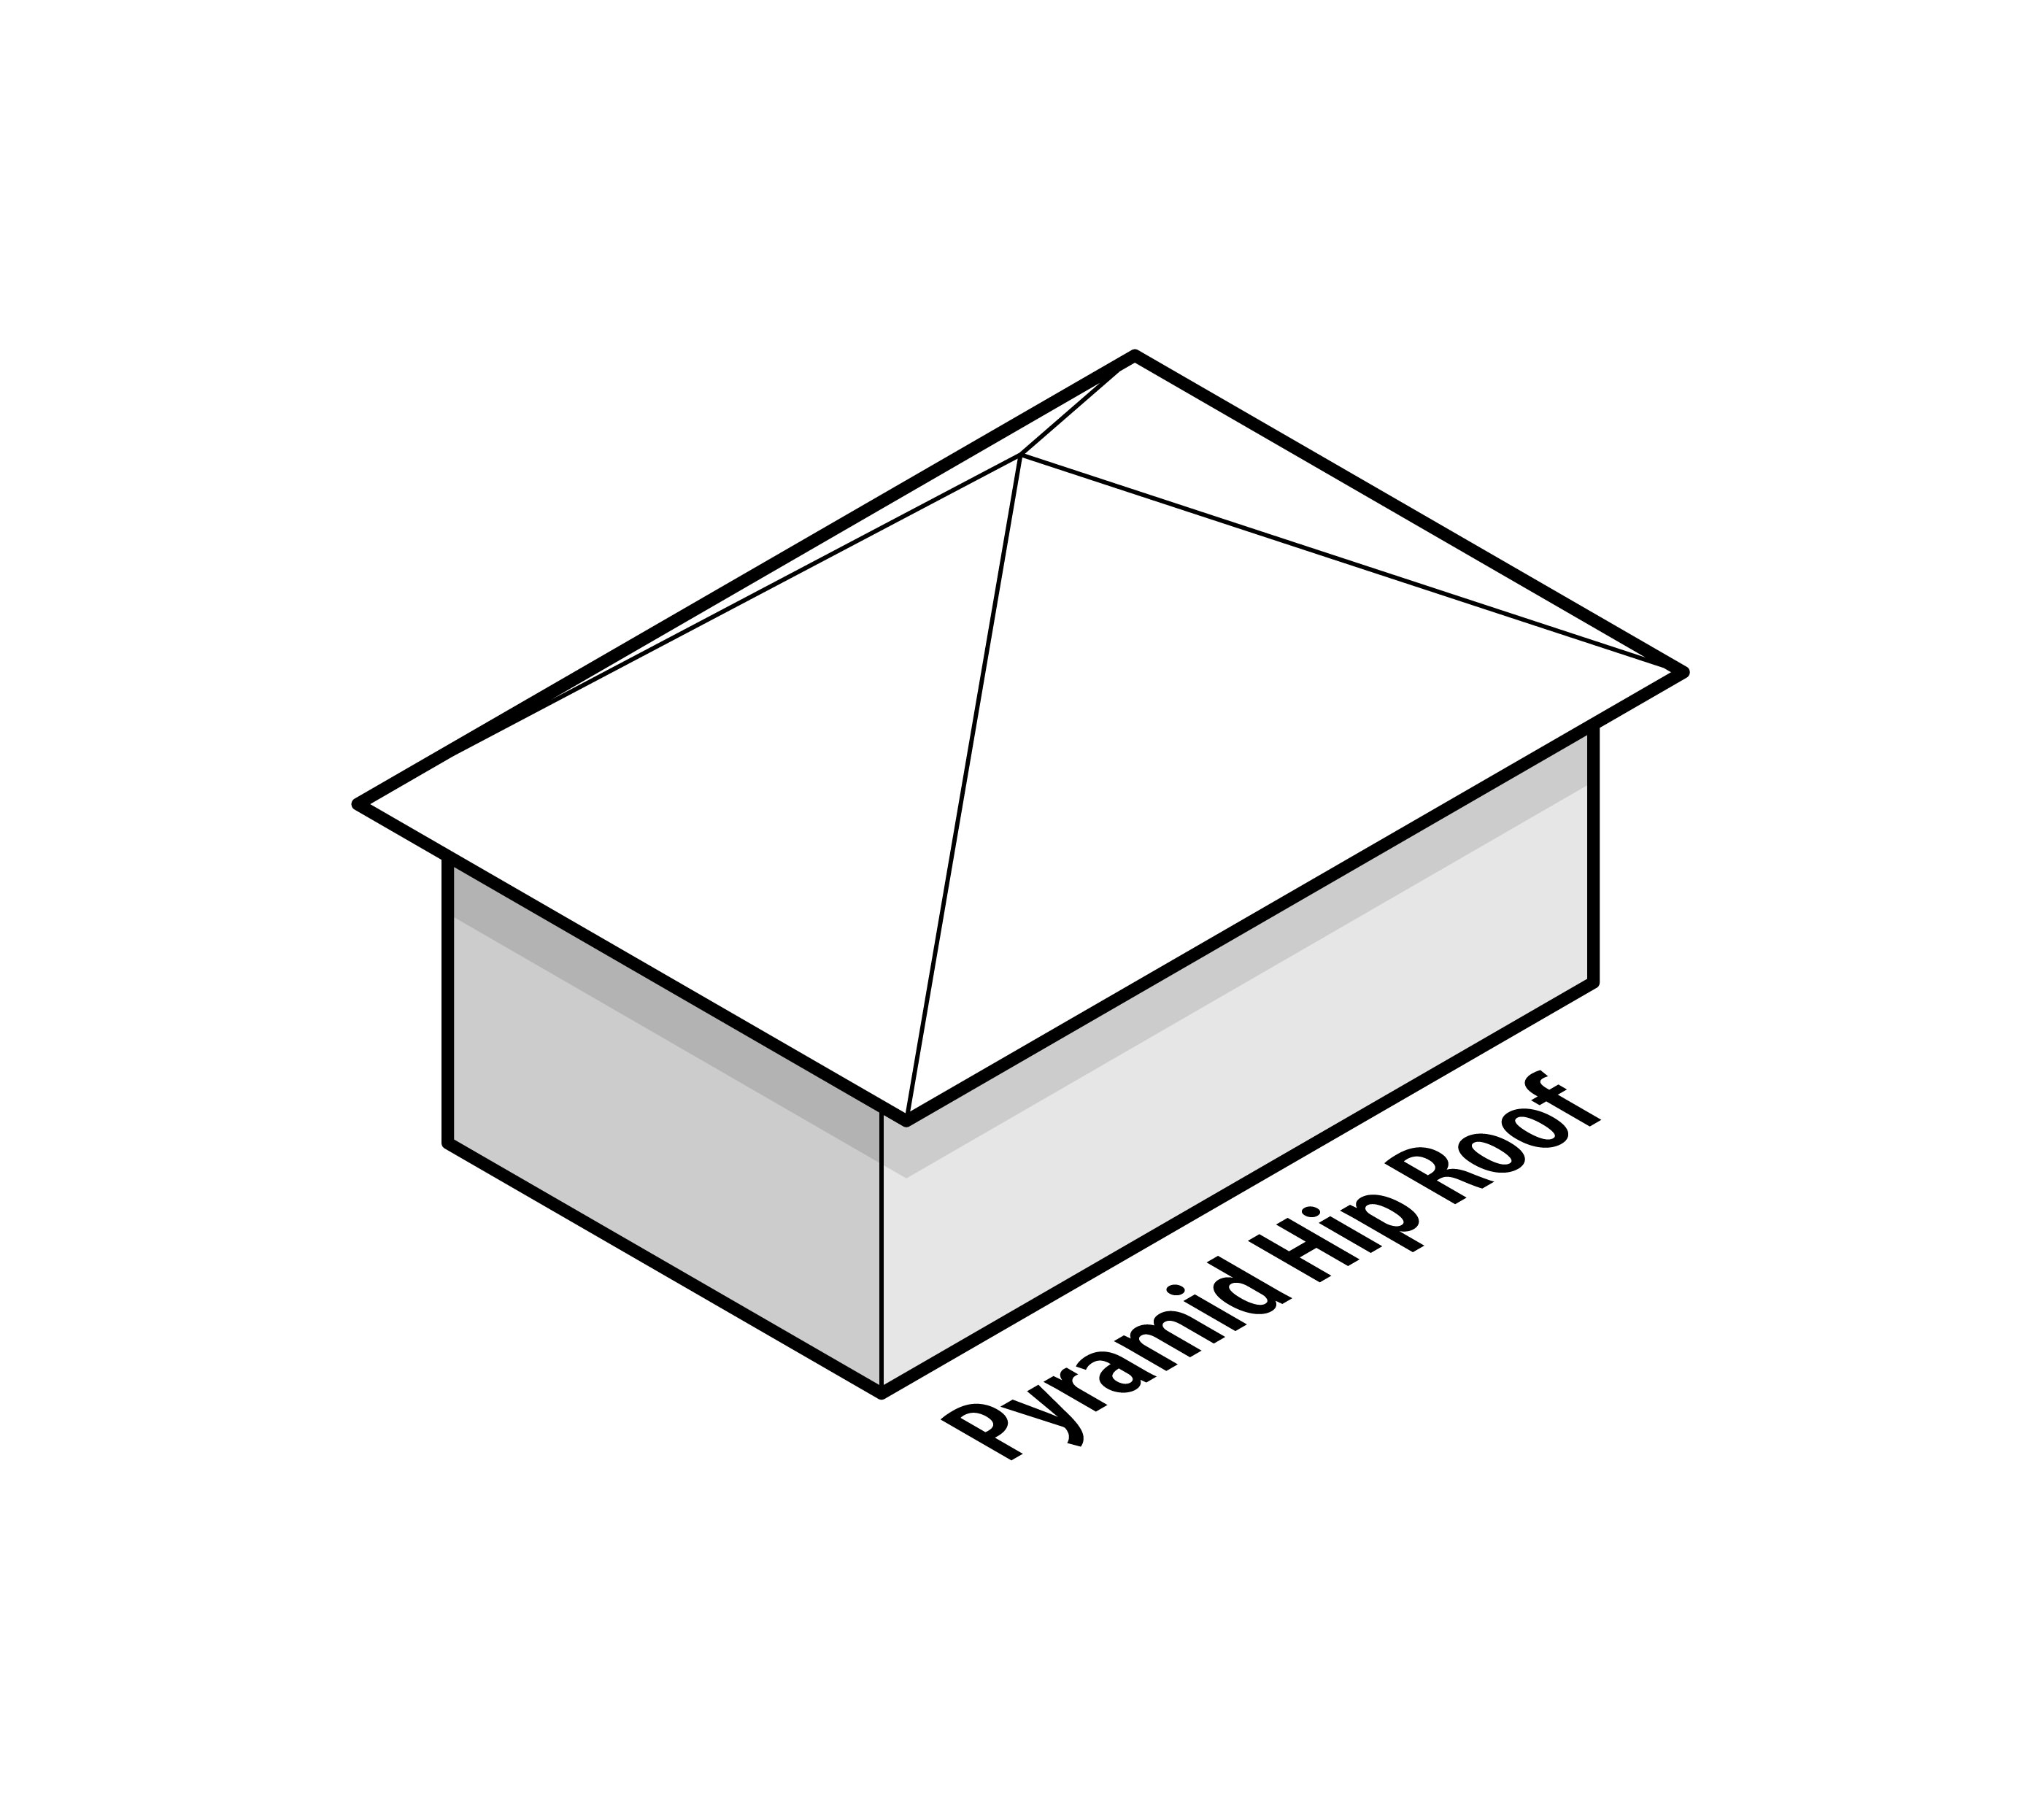 Pyramid House Plans 15 Types Of Home Roof Designs With Illustrations